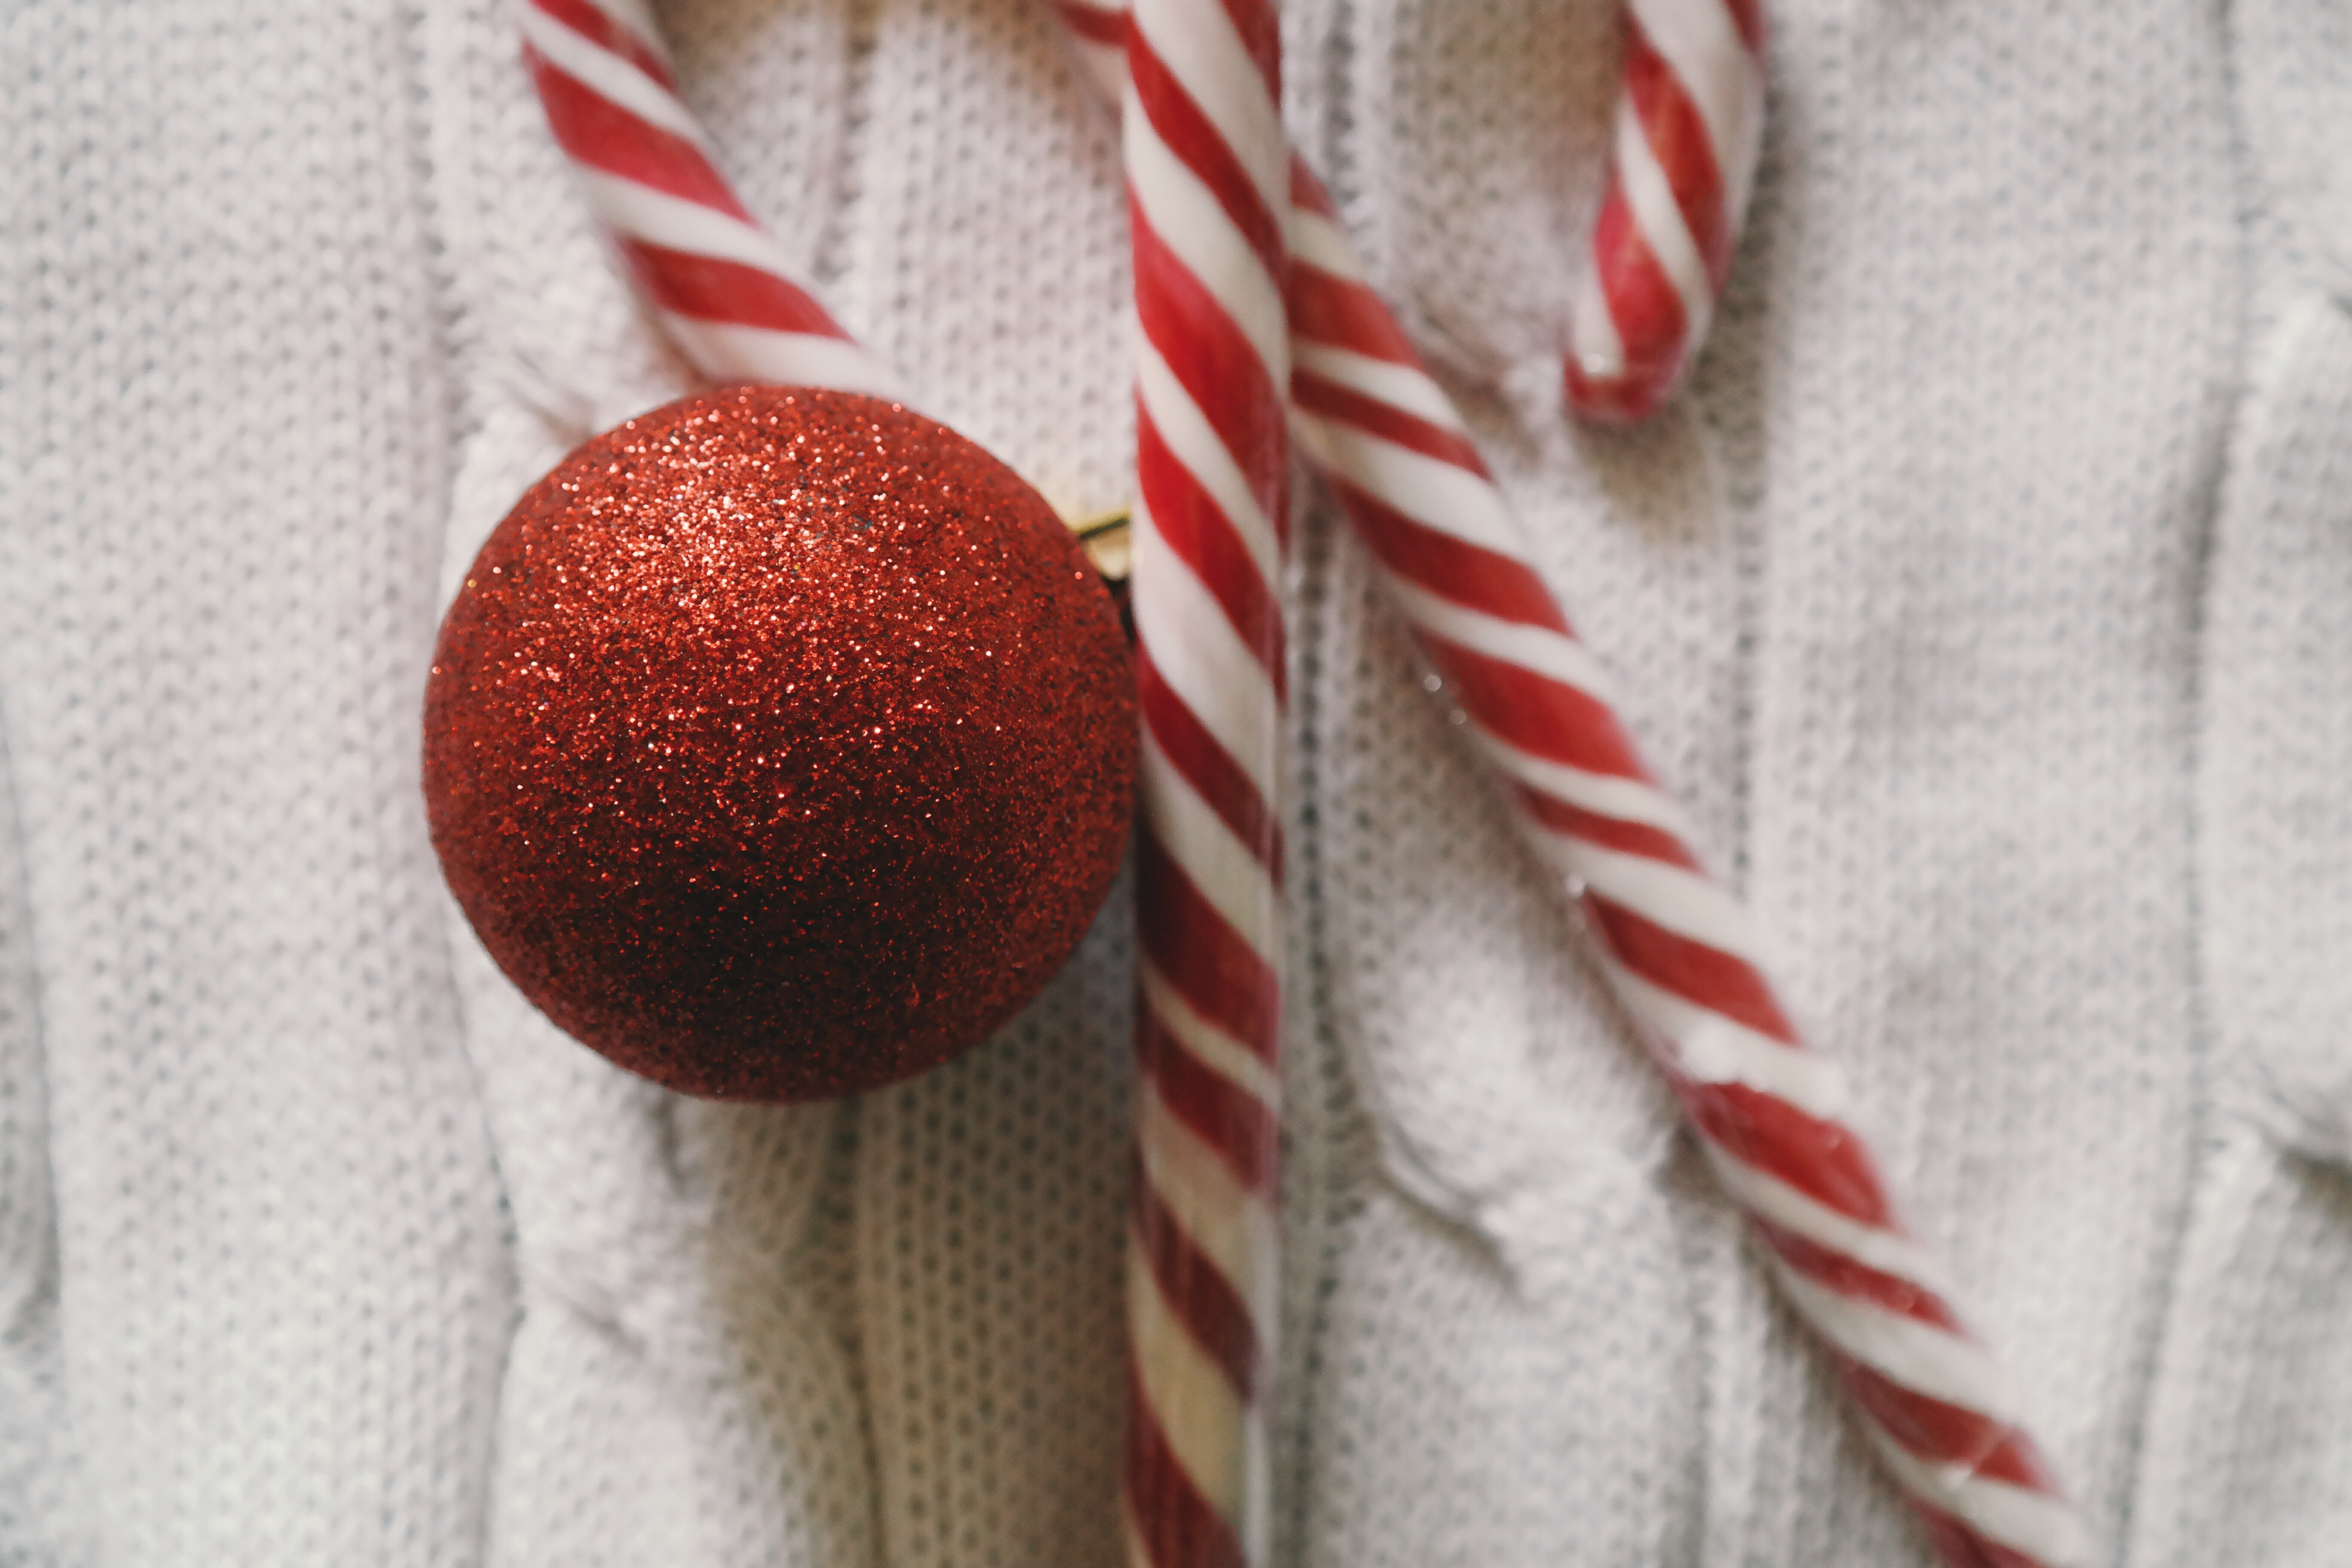 Two candy canes and a red XMAS ornament.